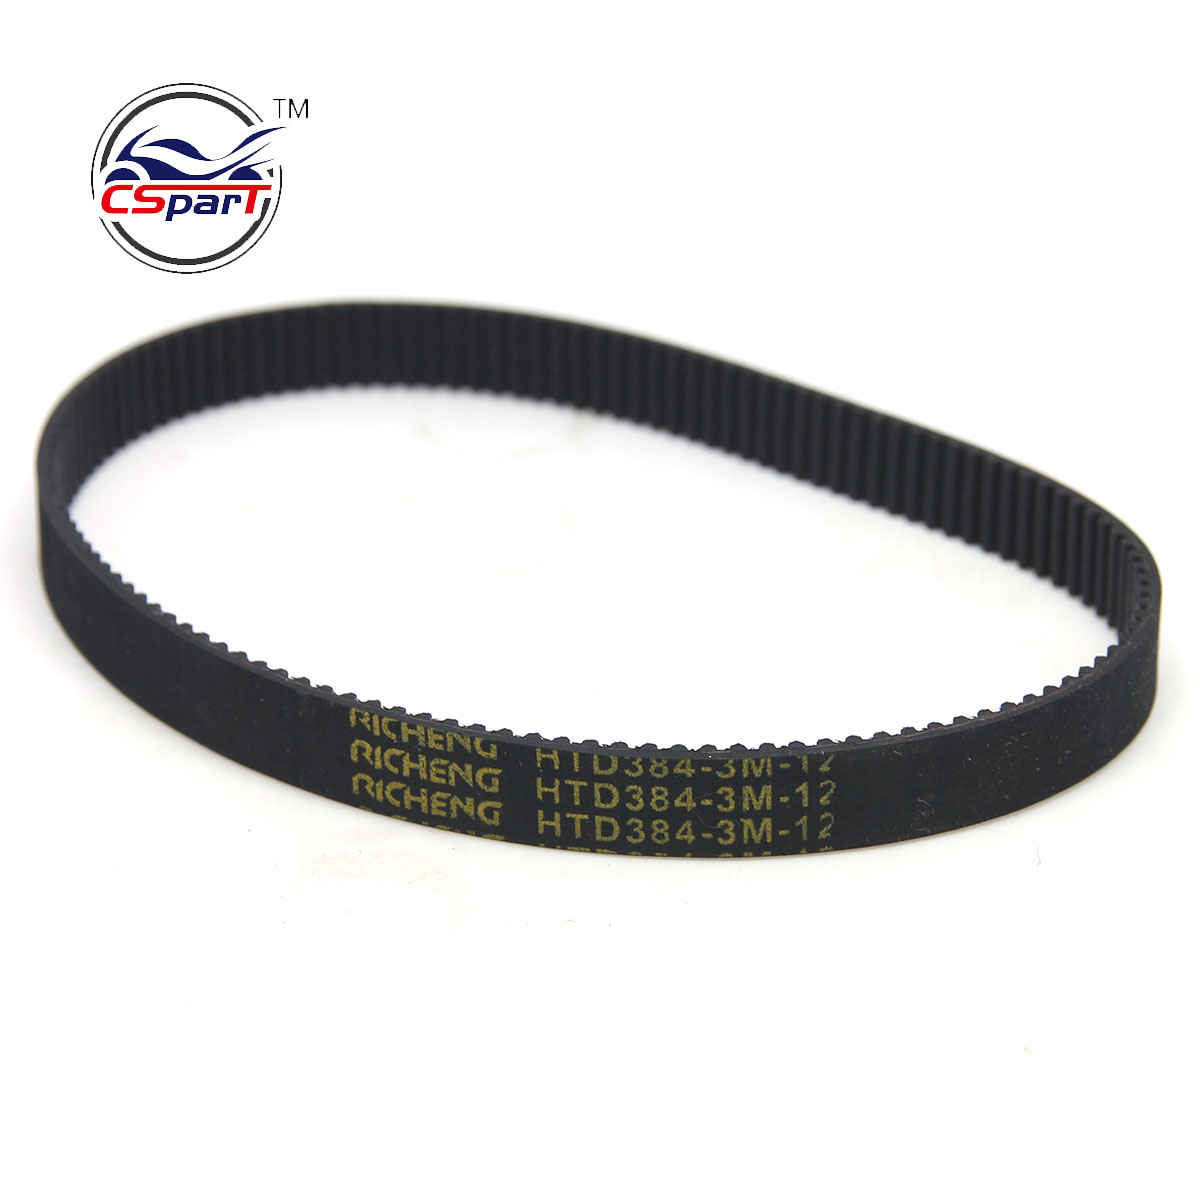 HTD 3M 384 12 128 Tooth Drive Belt Rocket  X-Treme Razor lzip EVO Electric Scooter Go Ped  Petrol Scooter Parts